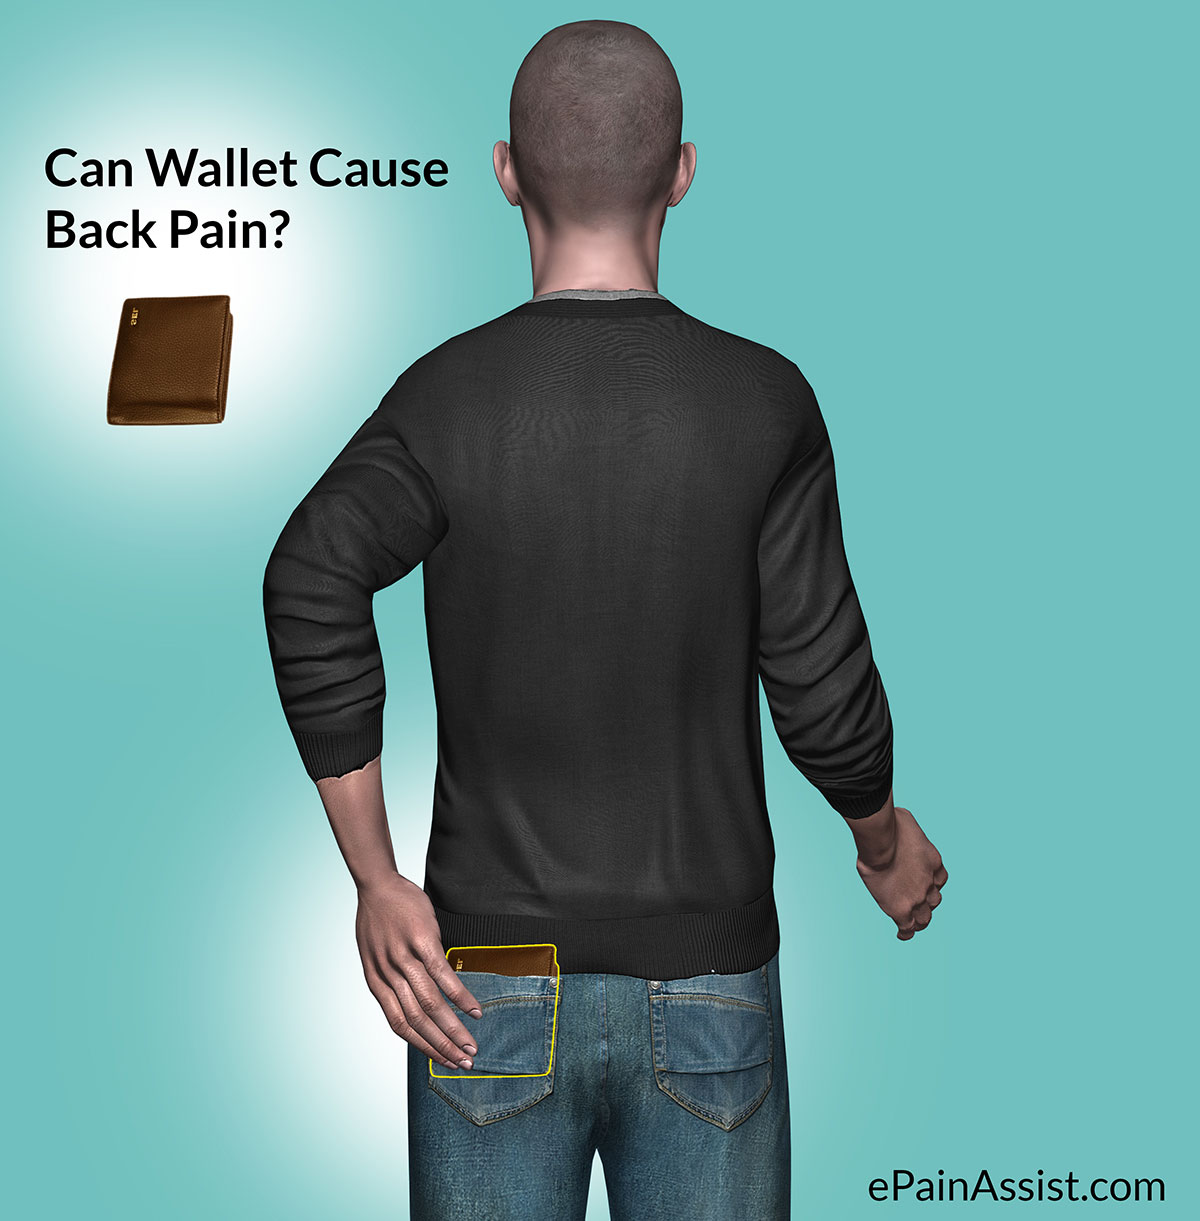 Can Wallet Cause Back Pain?